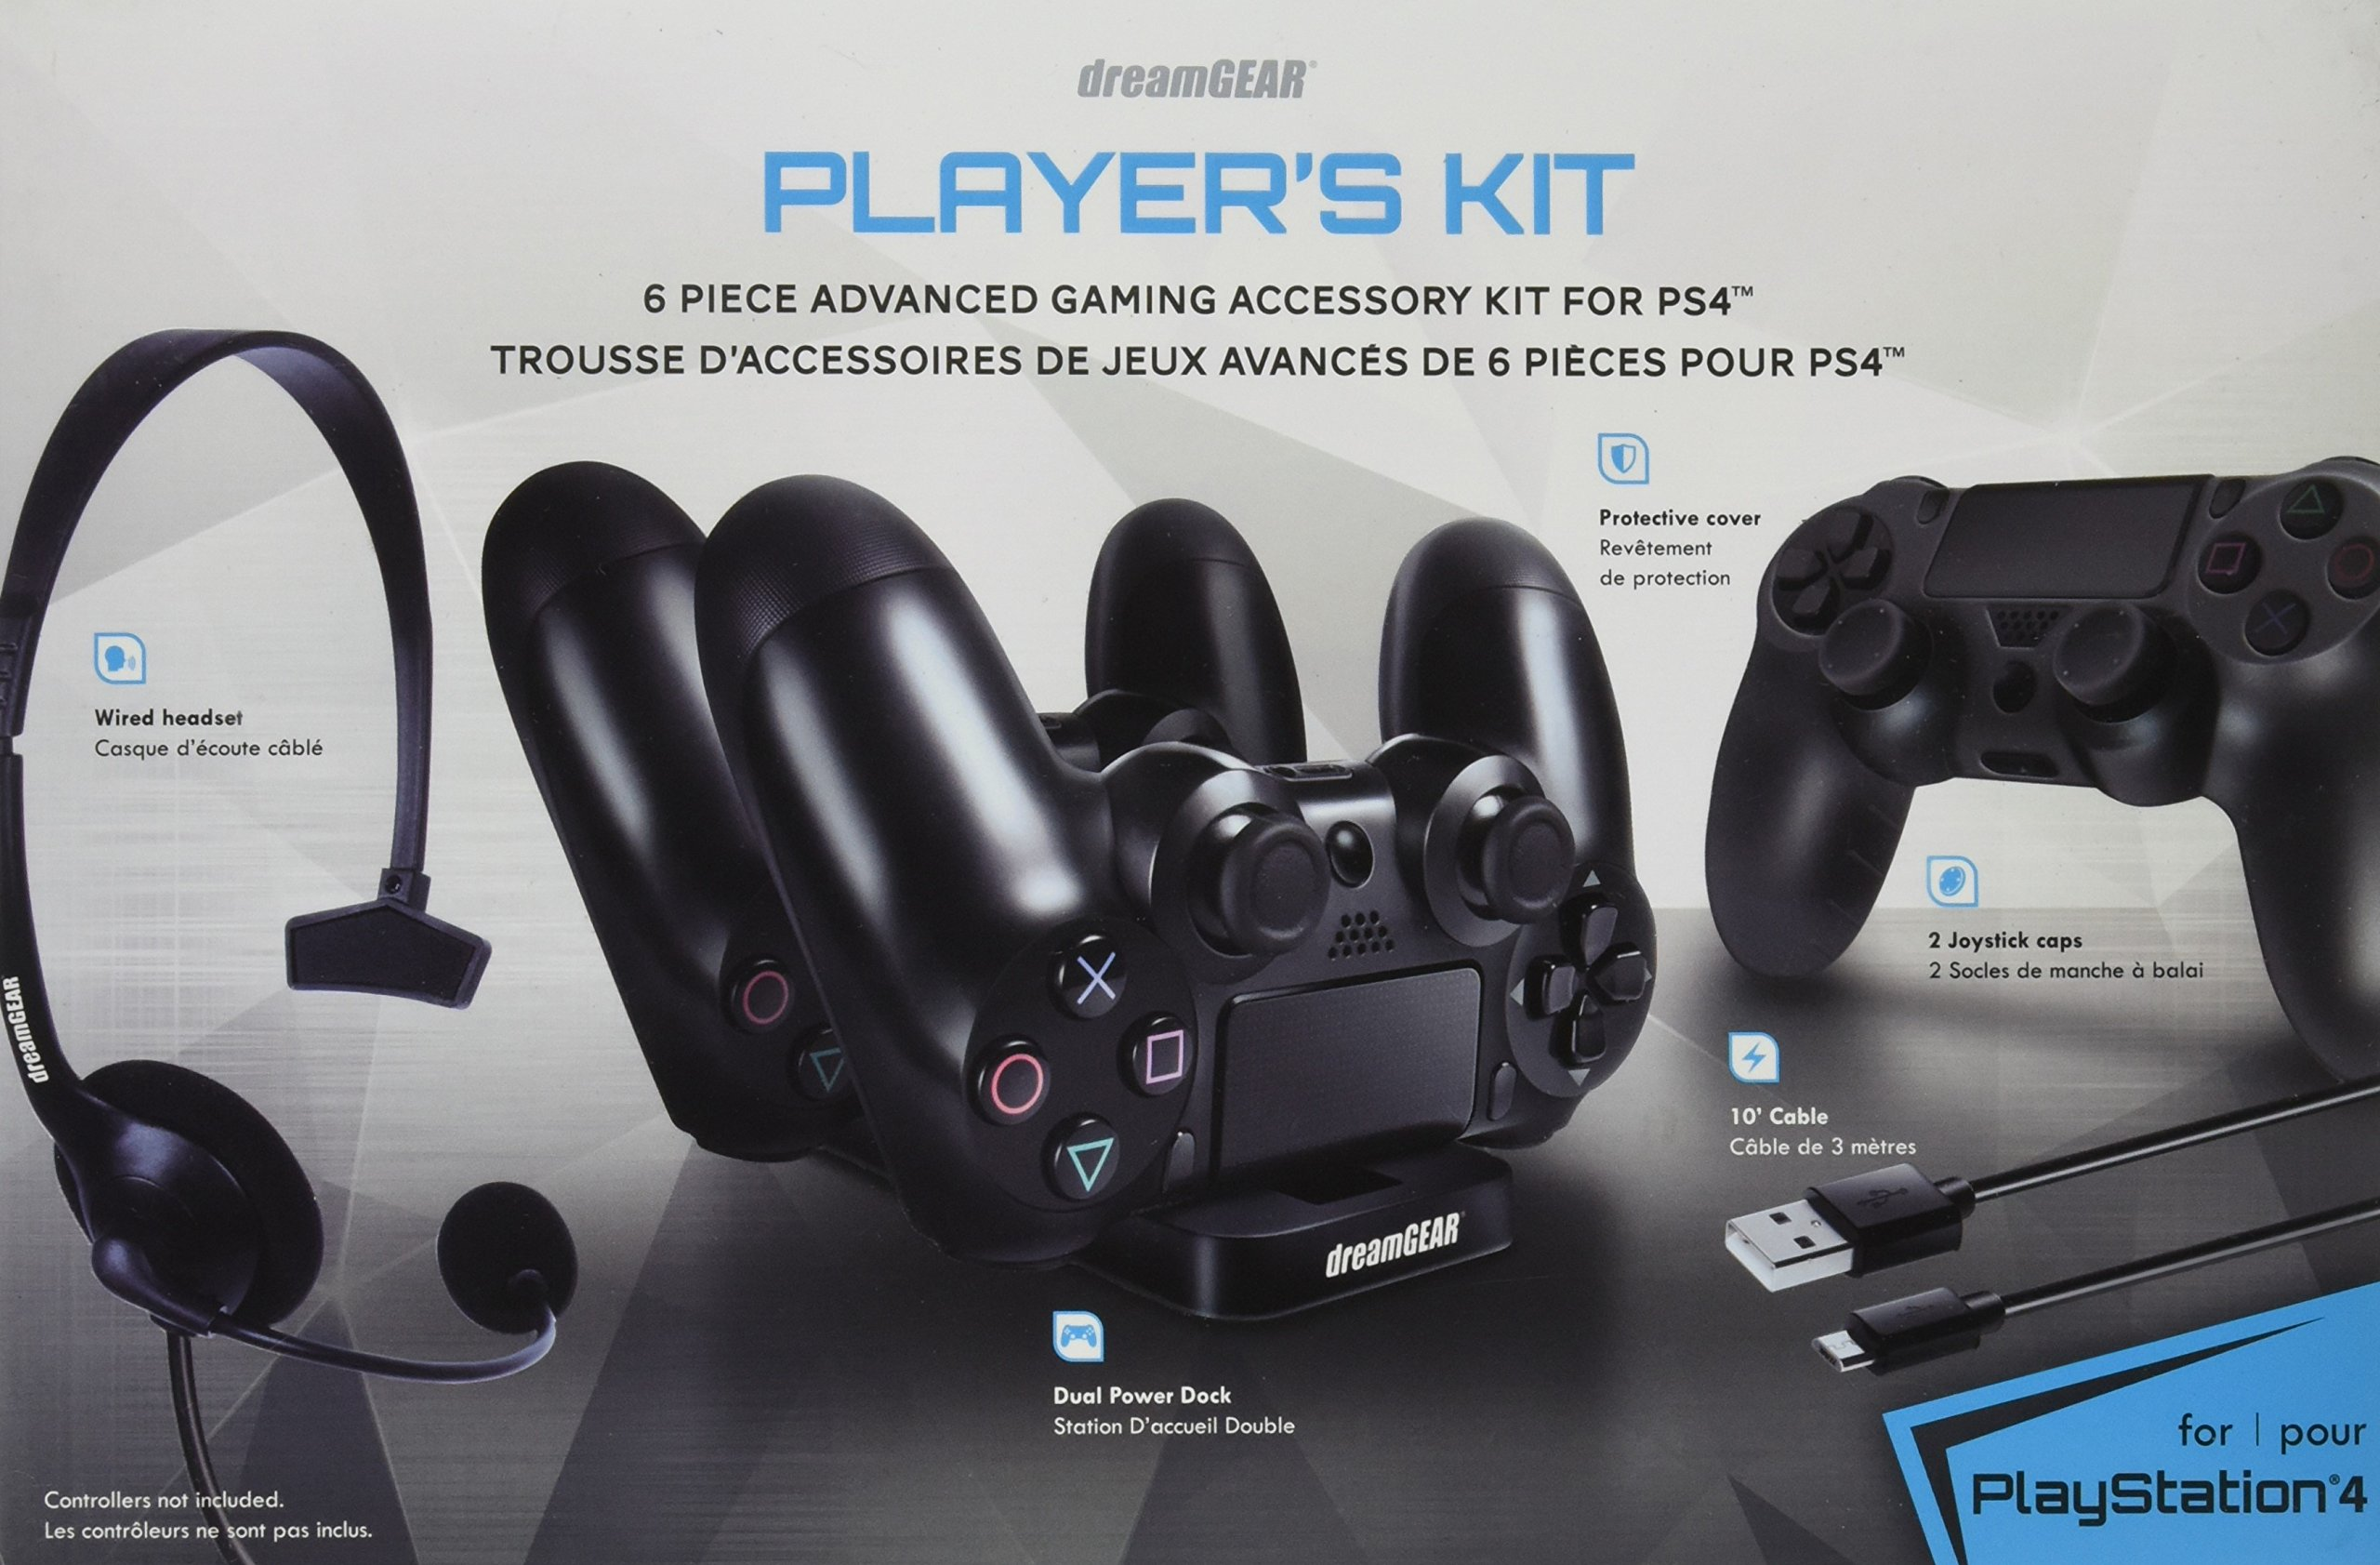 dreamGEAR – Player's Kit– includes charge dock/sync cable/headset/silicone controller cover – for PlayStation 4 by dreamGEAR